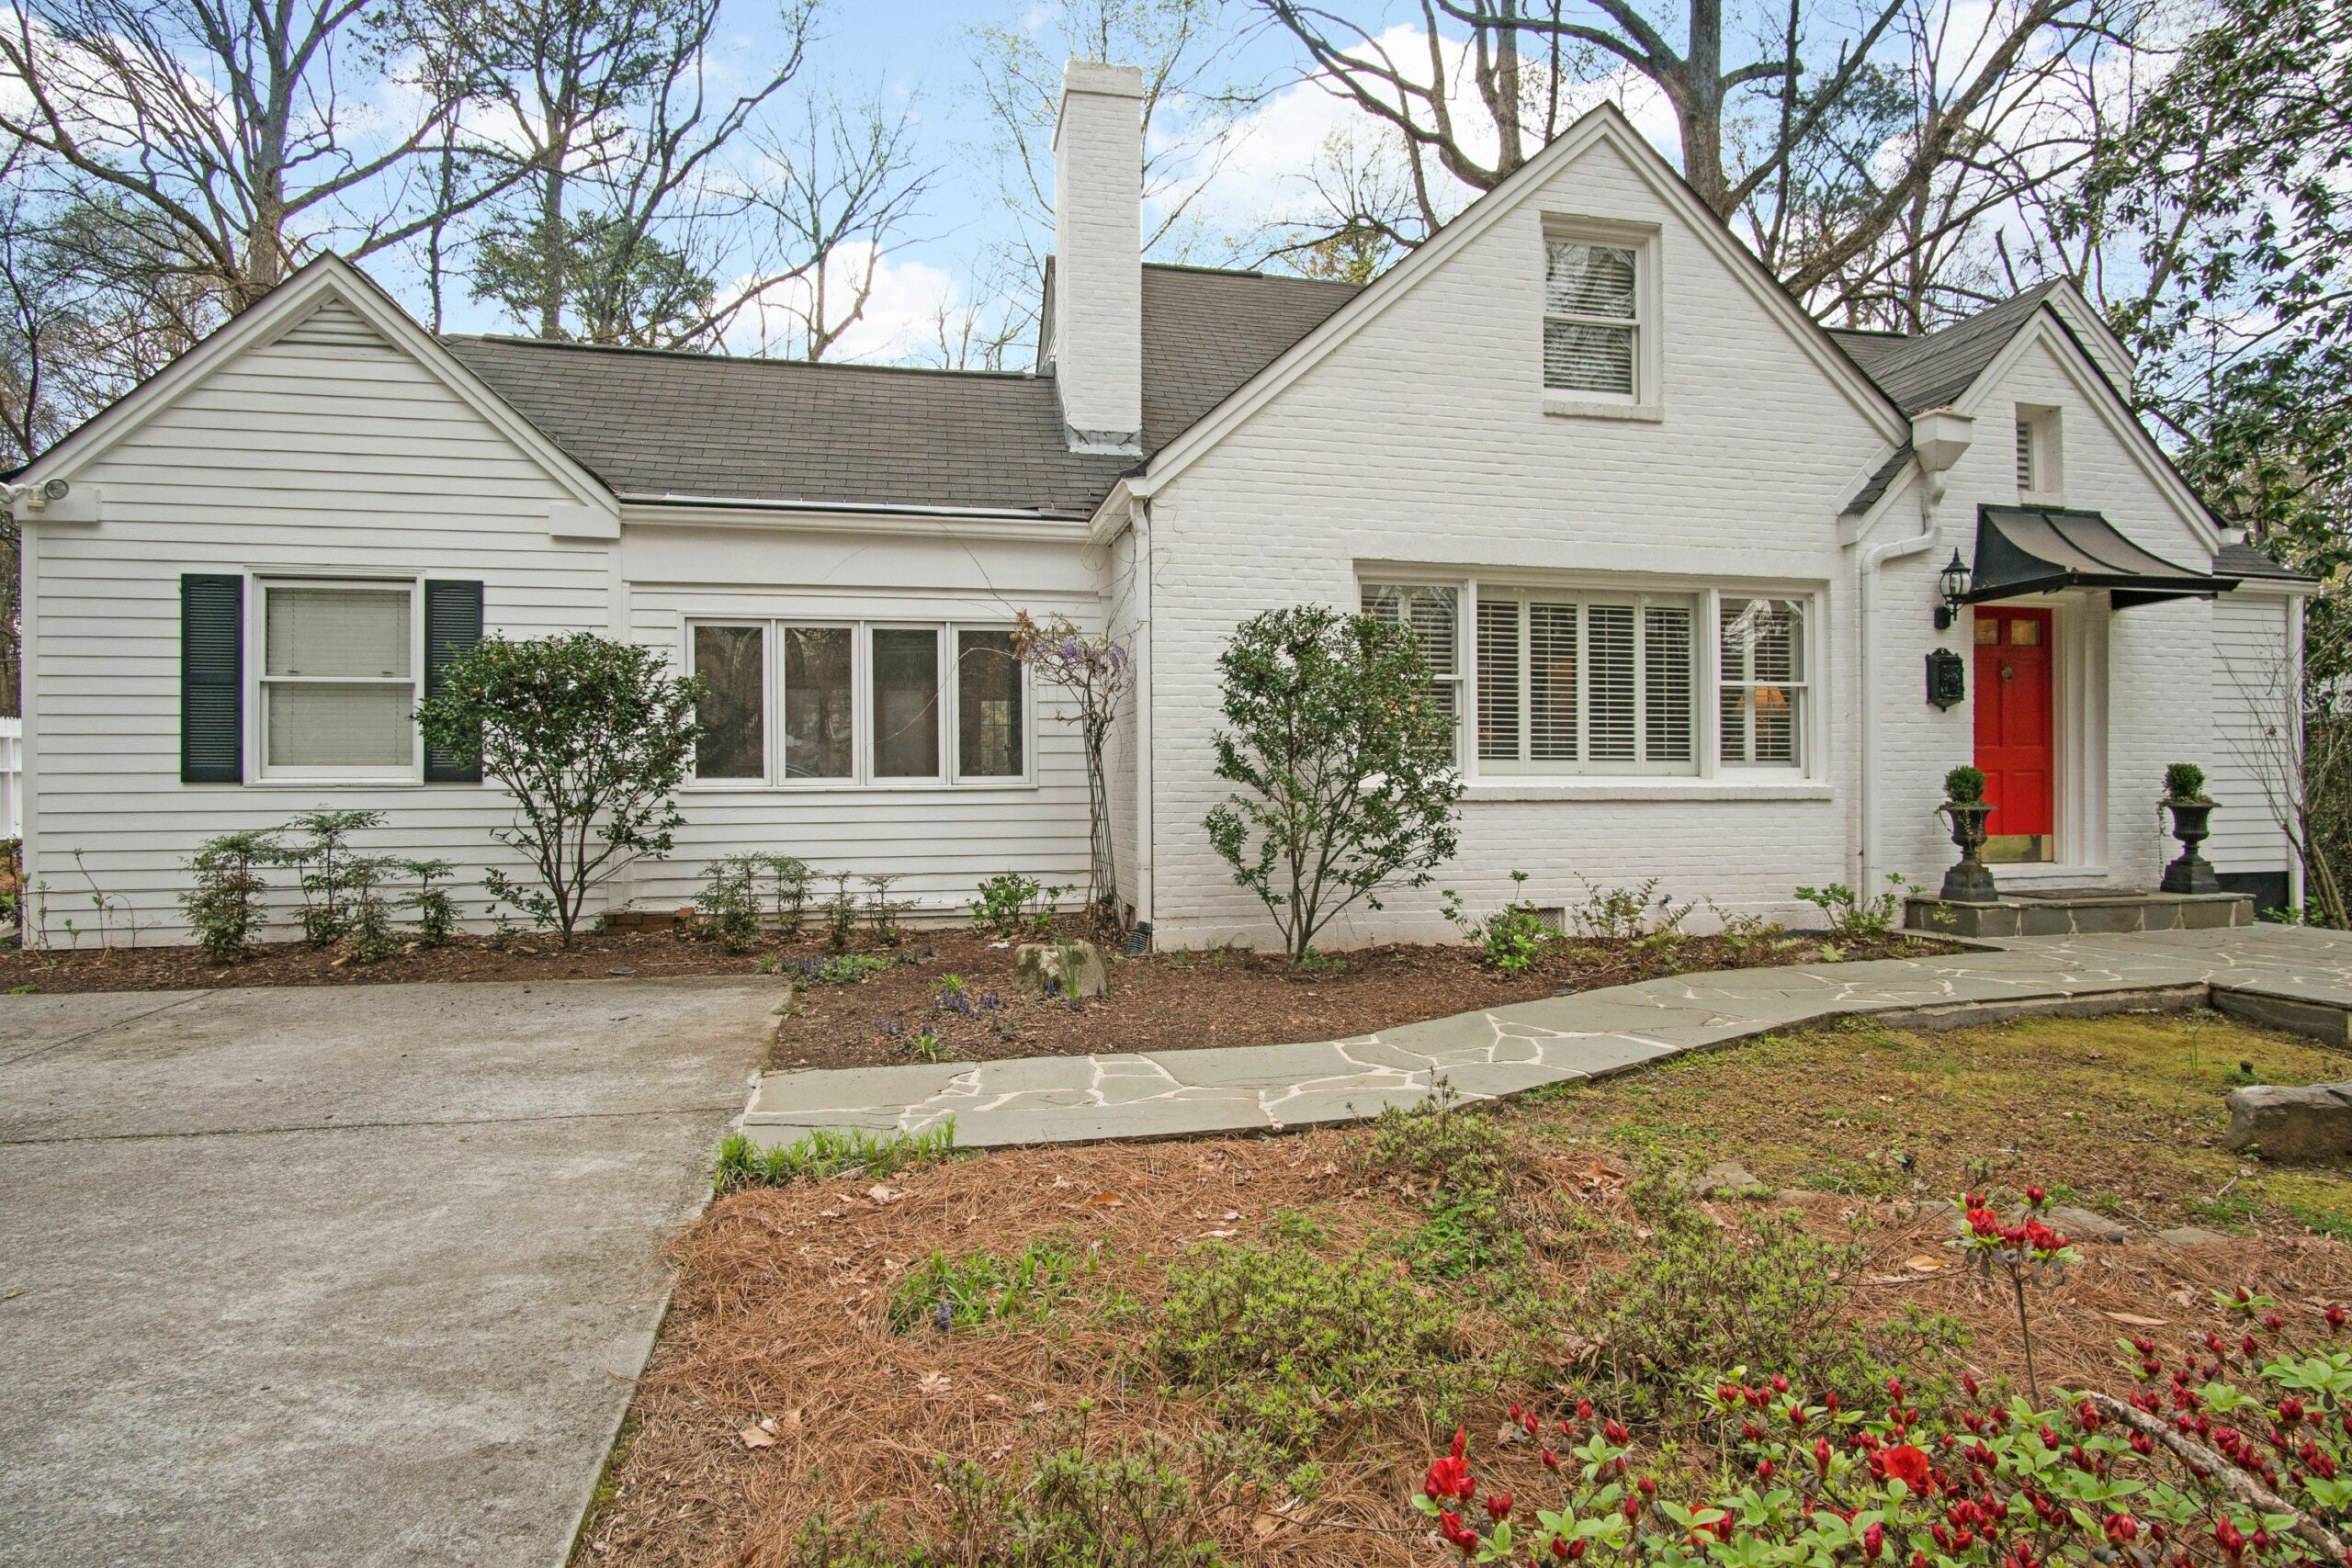 Houses for sale in buckhead